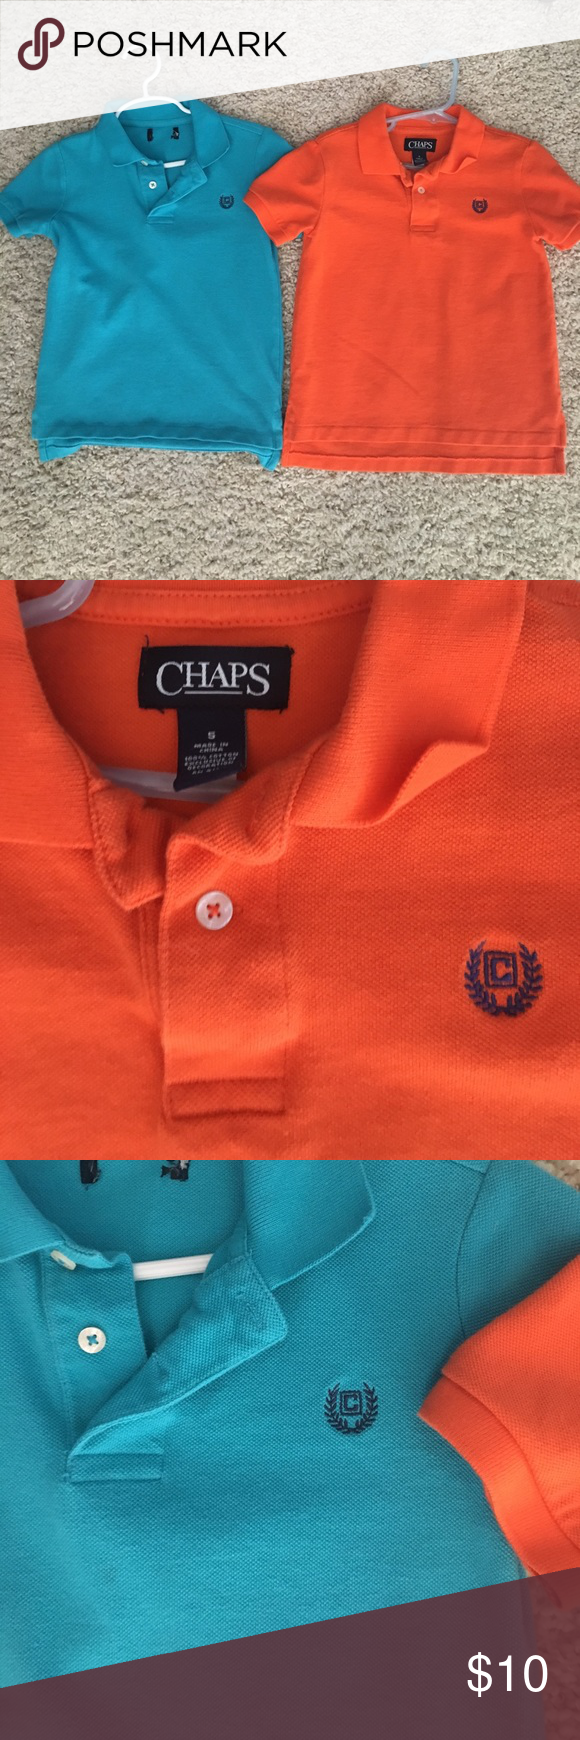 Boys polo shirts size 5 In excellent condition. My kids hated shirts with collars, so they never wore these!  Lol.  From a non-smoking home. $10 takes both Chaps Shirts & Tops Polos